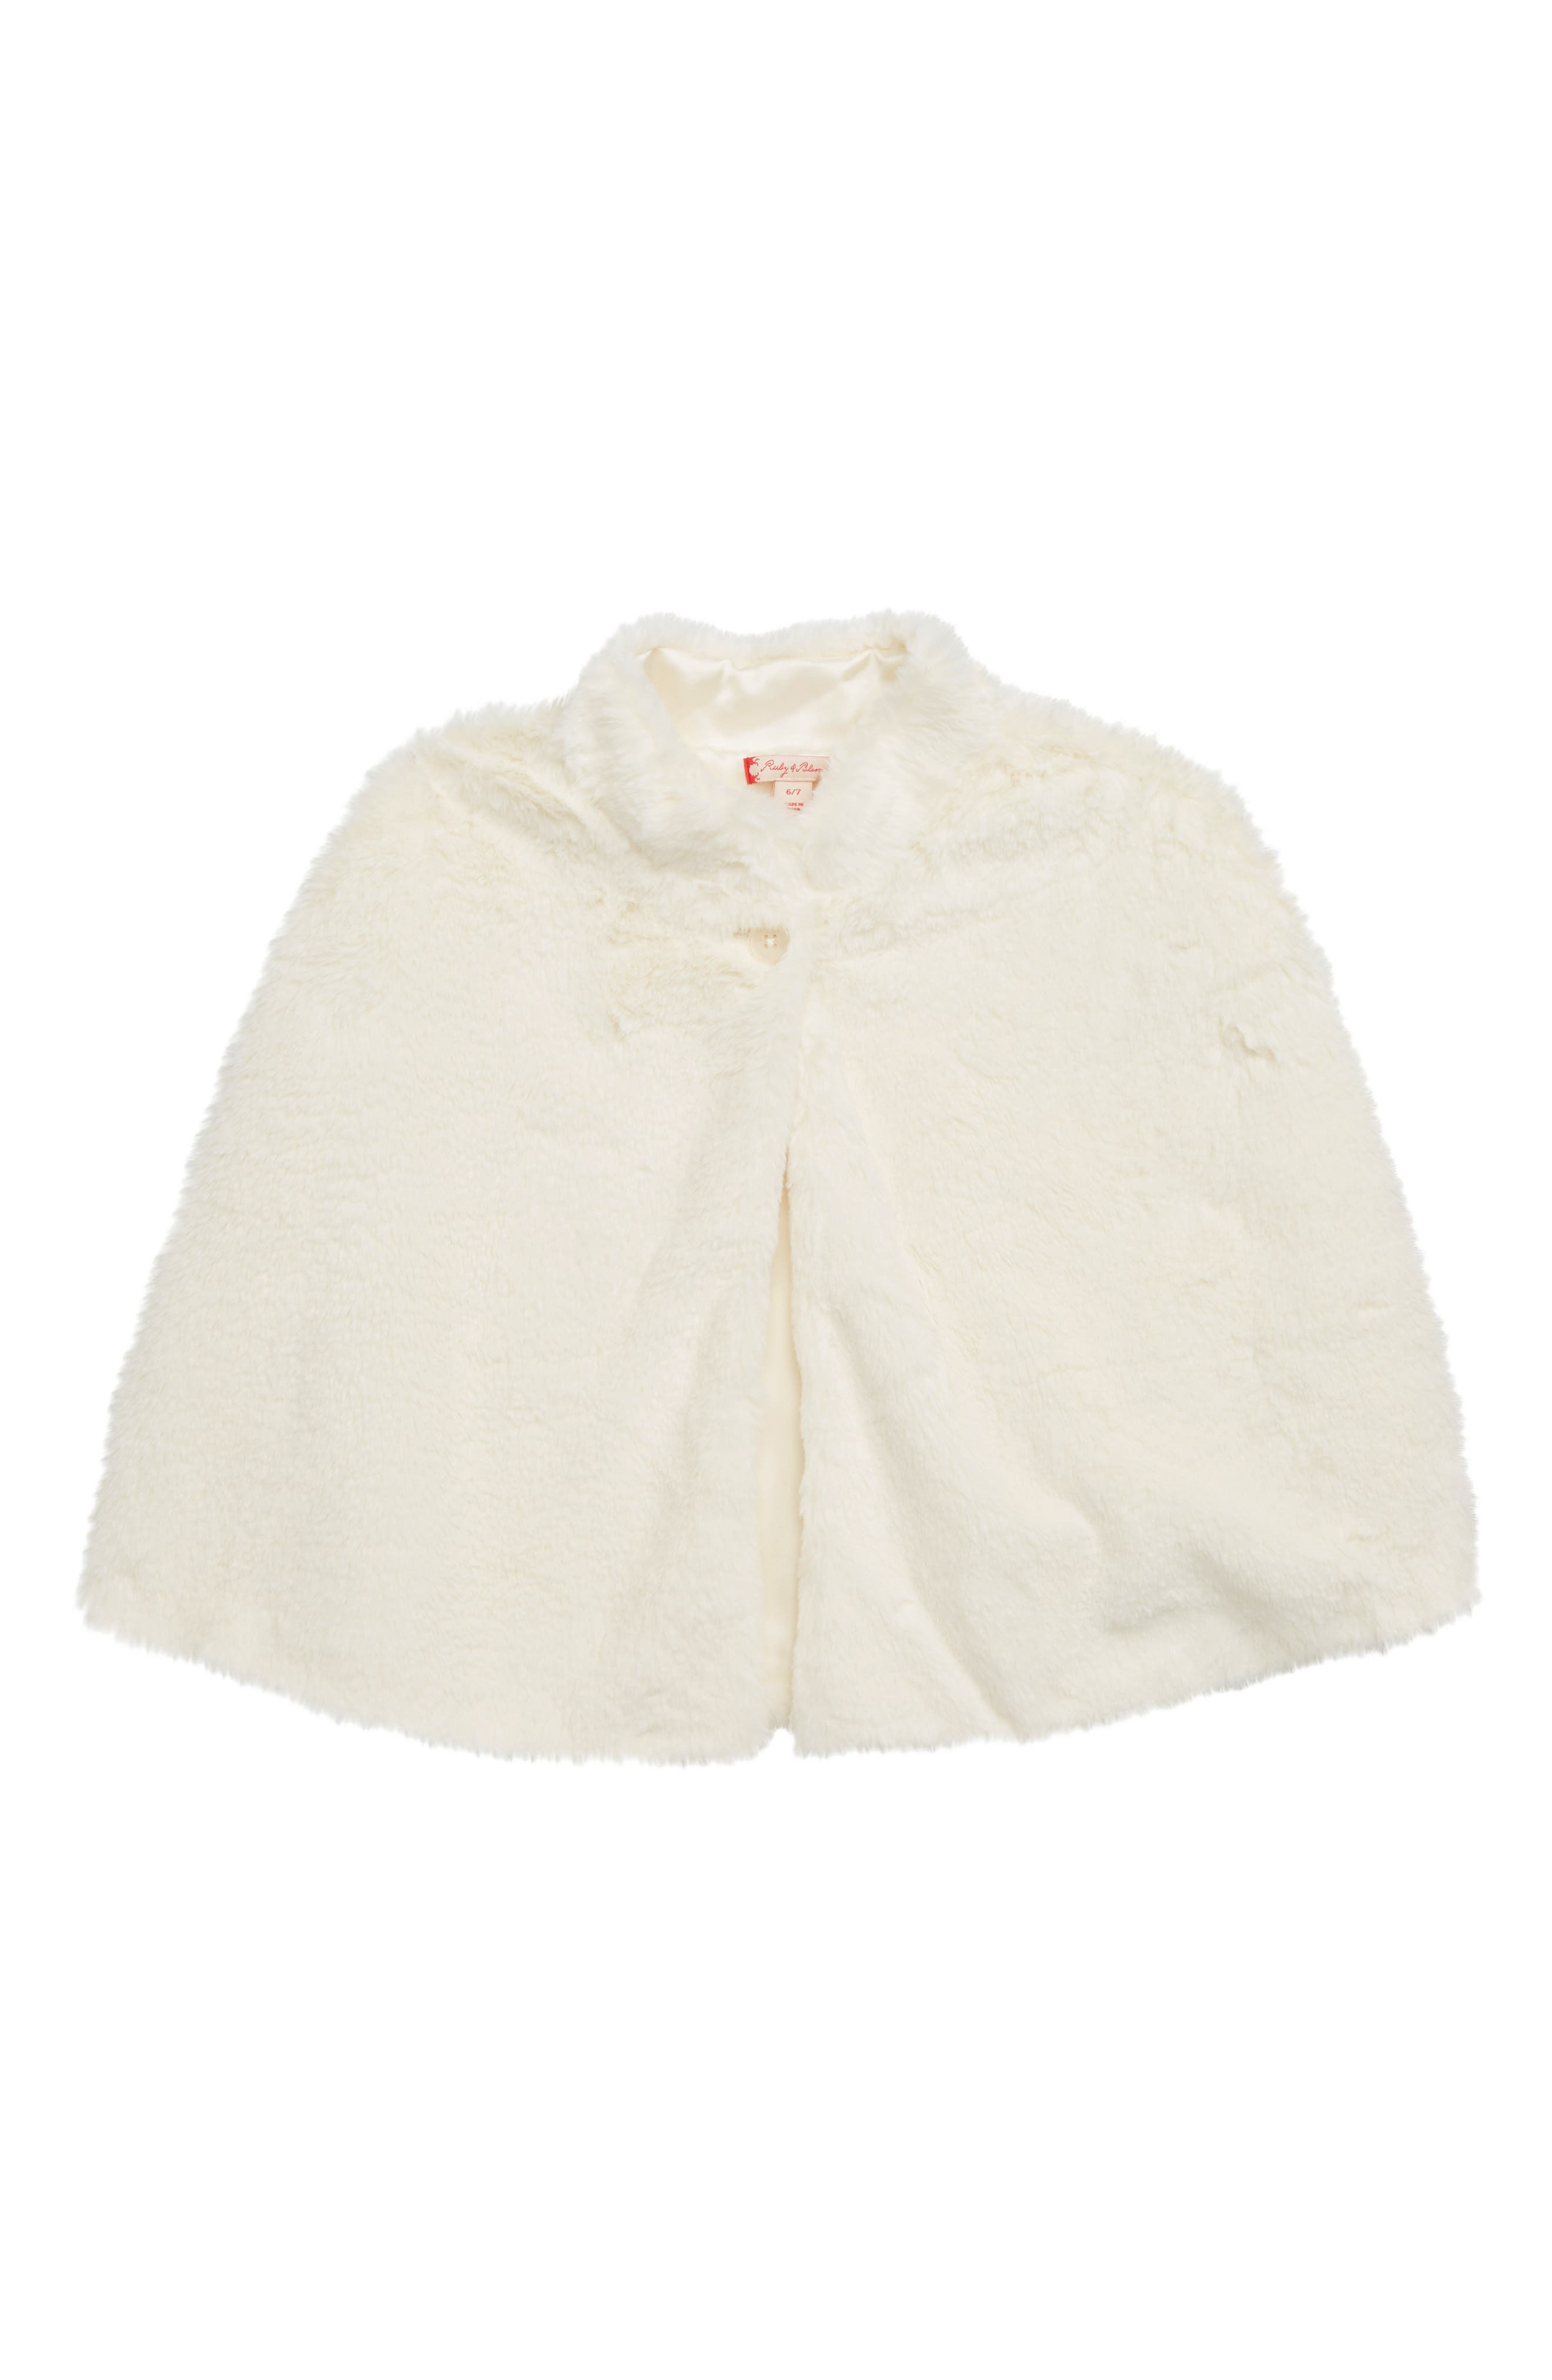 Kids 1950s Clothing & Costumes: Girls, Boys, Toddlers Toddler Girls Ruby  Bloom Faux Fur Cape Size 2-3T - Ivory $55.00 AT vintagedancer.com